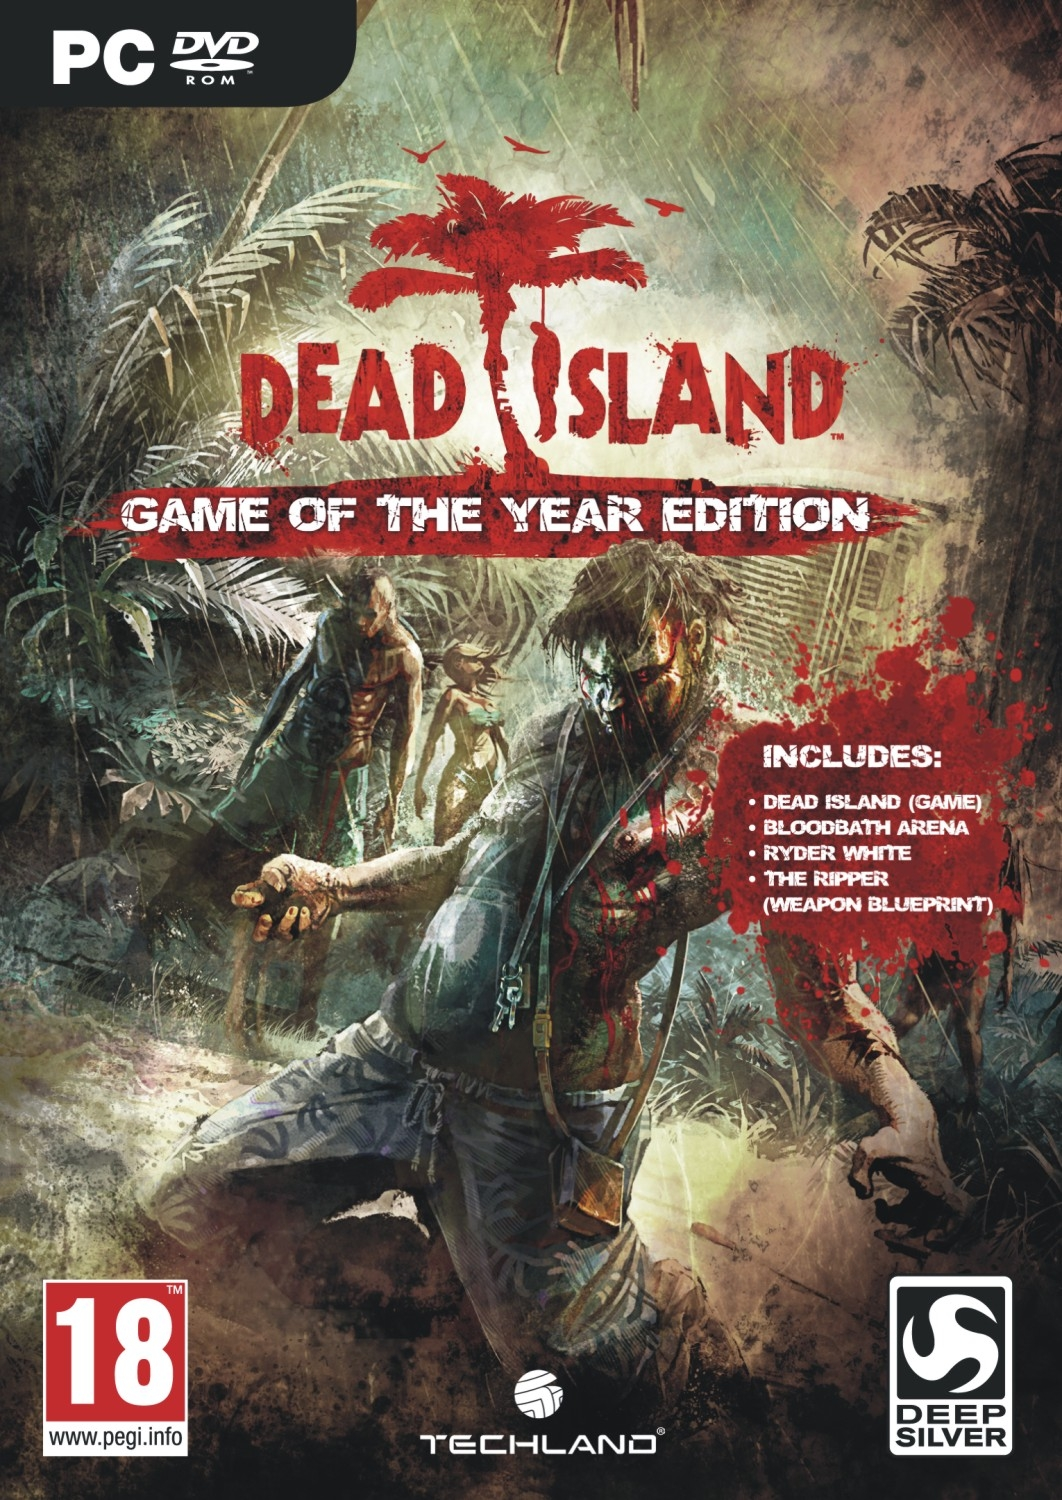 How To Save Game On Dead Island Xbox